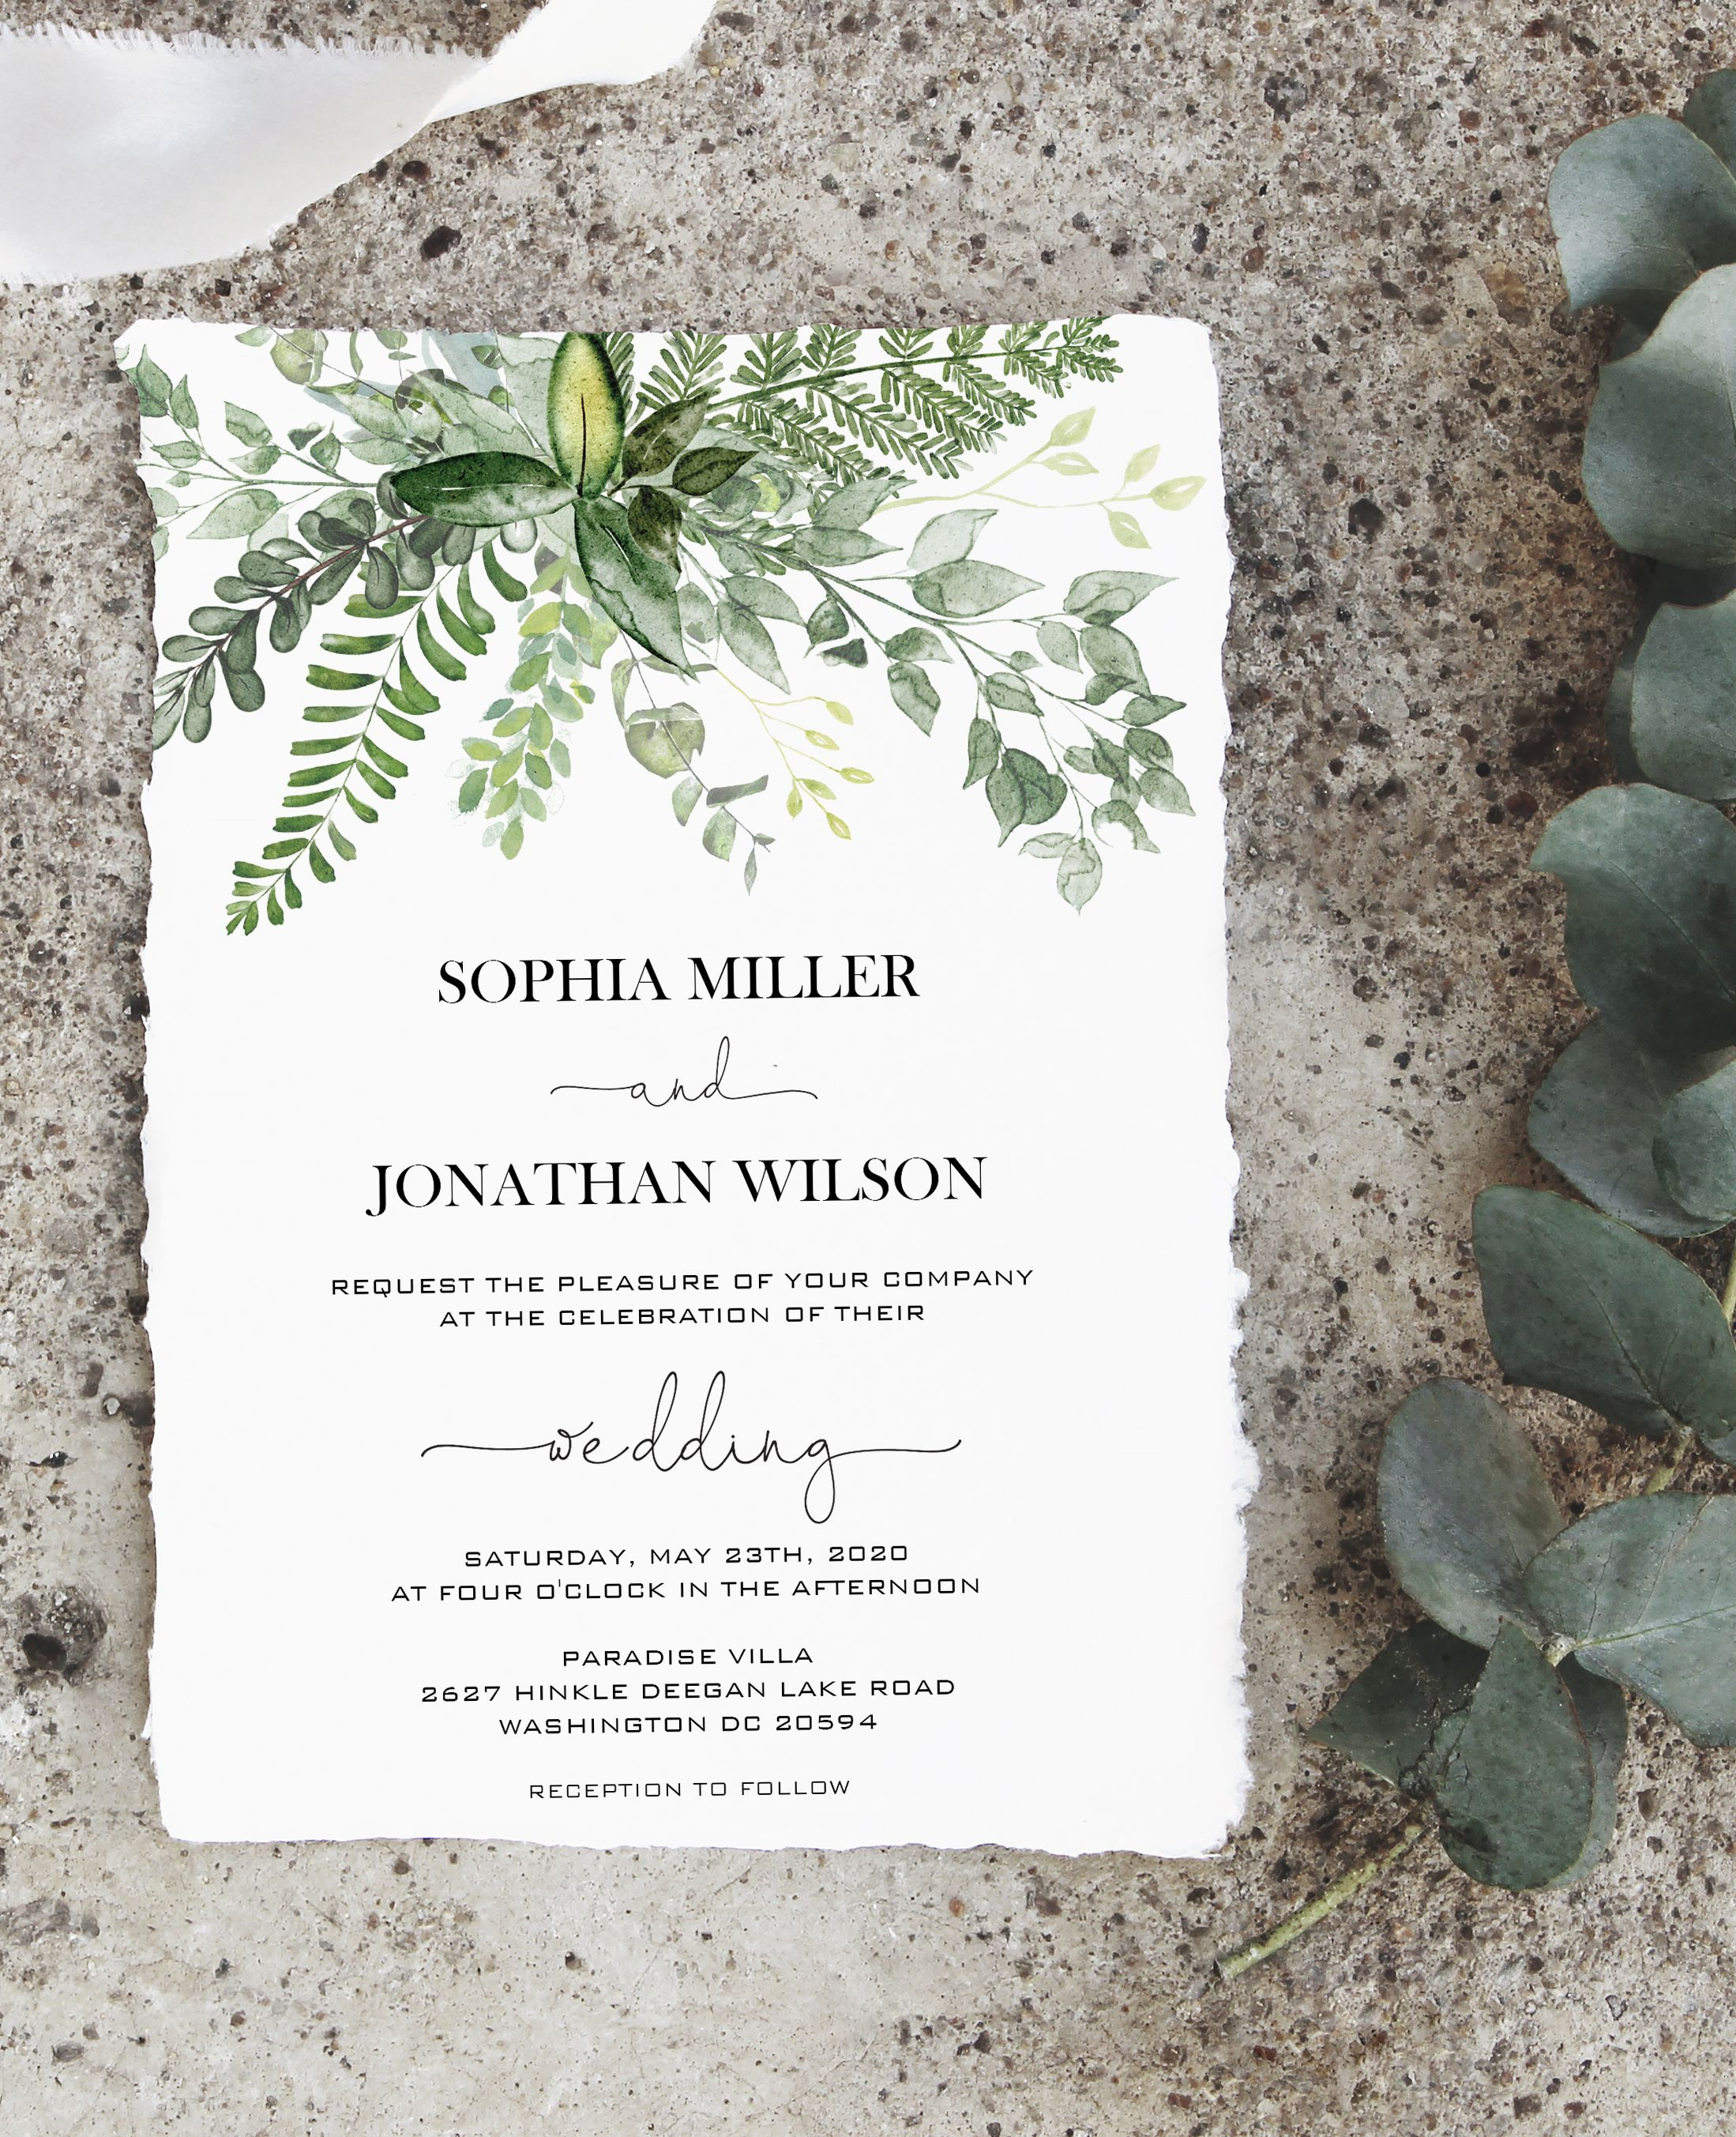 Greenery Wedding Invitation Template Printable Enchanted Forest Invite Card Editable Invite Card Fern Leaves Pdf Wedding Invitation Templates Enchanted Forest Wedding Invitations Forest Wedding Invitations